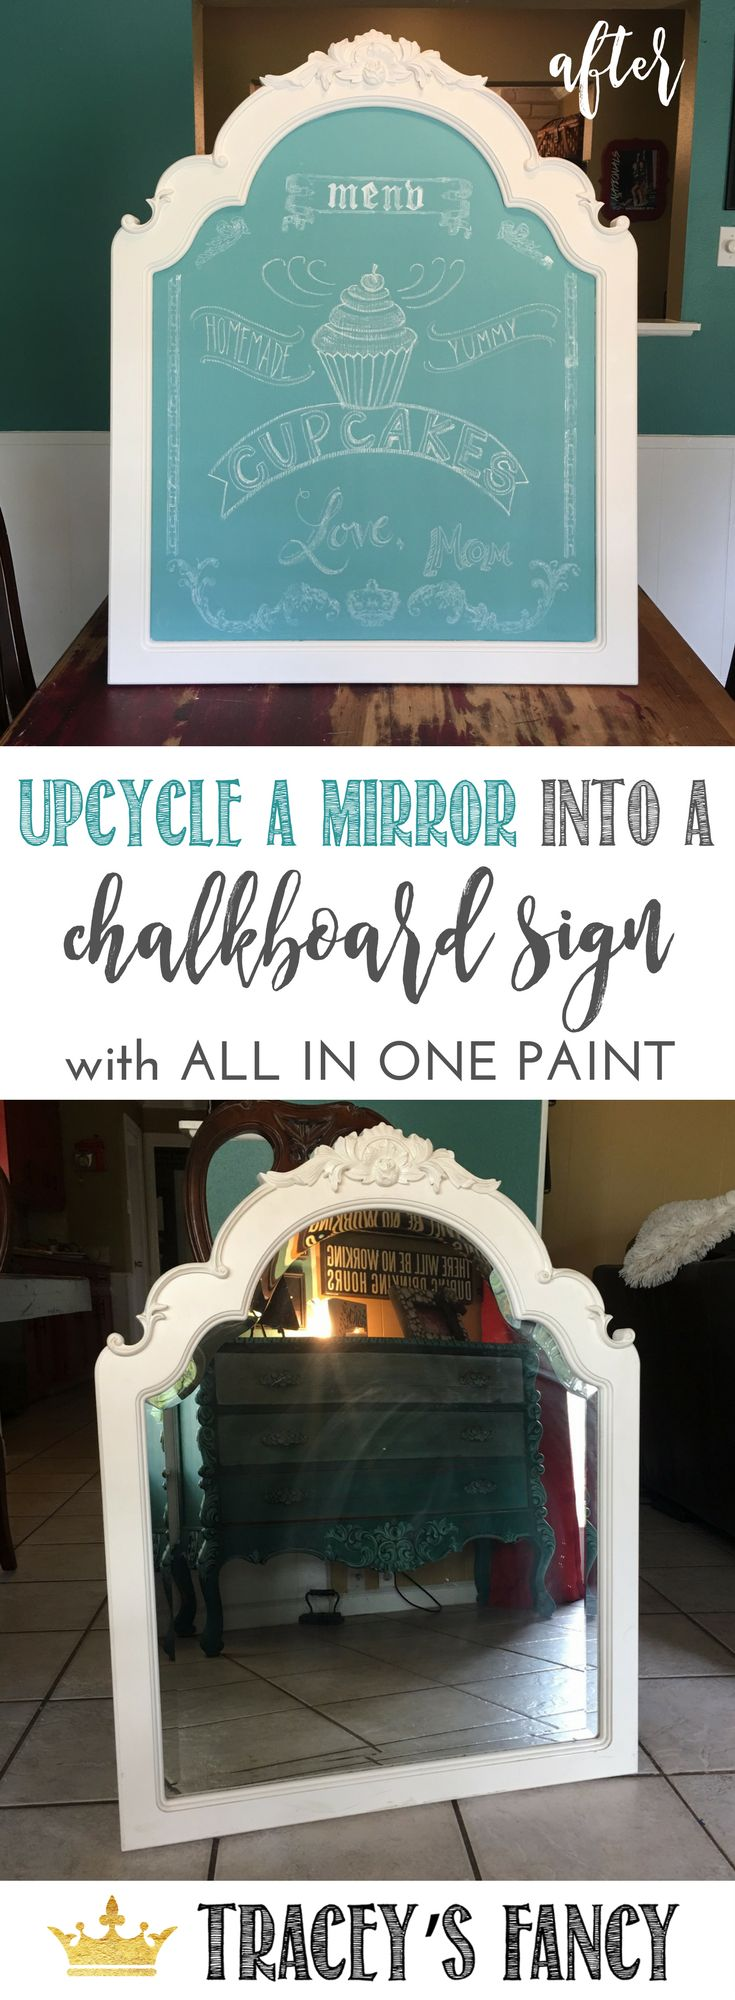 Upcycle a Mirror into a chalkboard sign - great for chalkboard menus and wall art. Furniture Painting Tips by TraceysFancy | DIY Chalkboard projects | Upcycled Projects | Gift Ideas | What to do with leftover mirrors | Repurposed Furniture Ideas | Furnitu